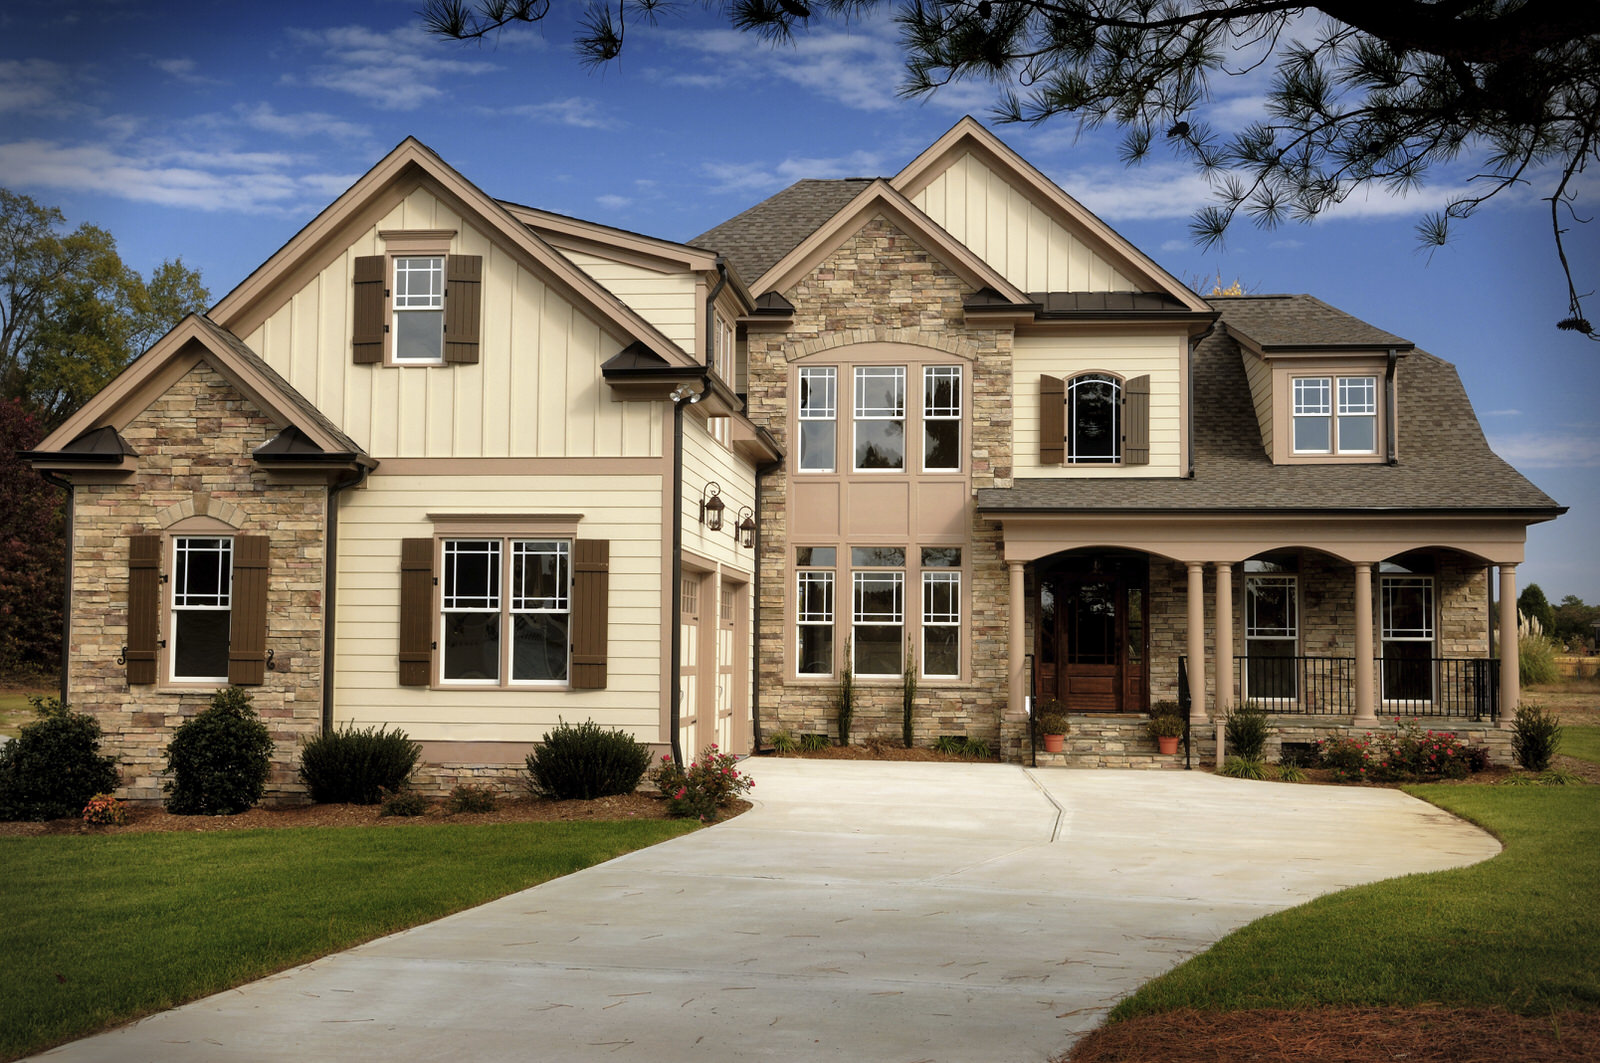 BUYING A HOME -